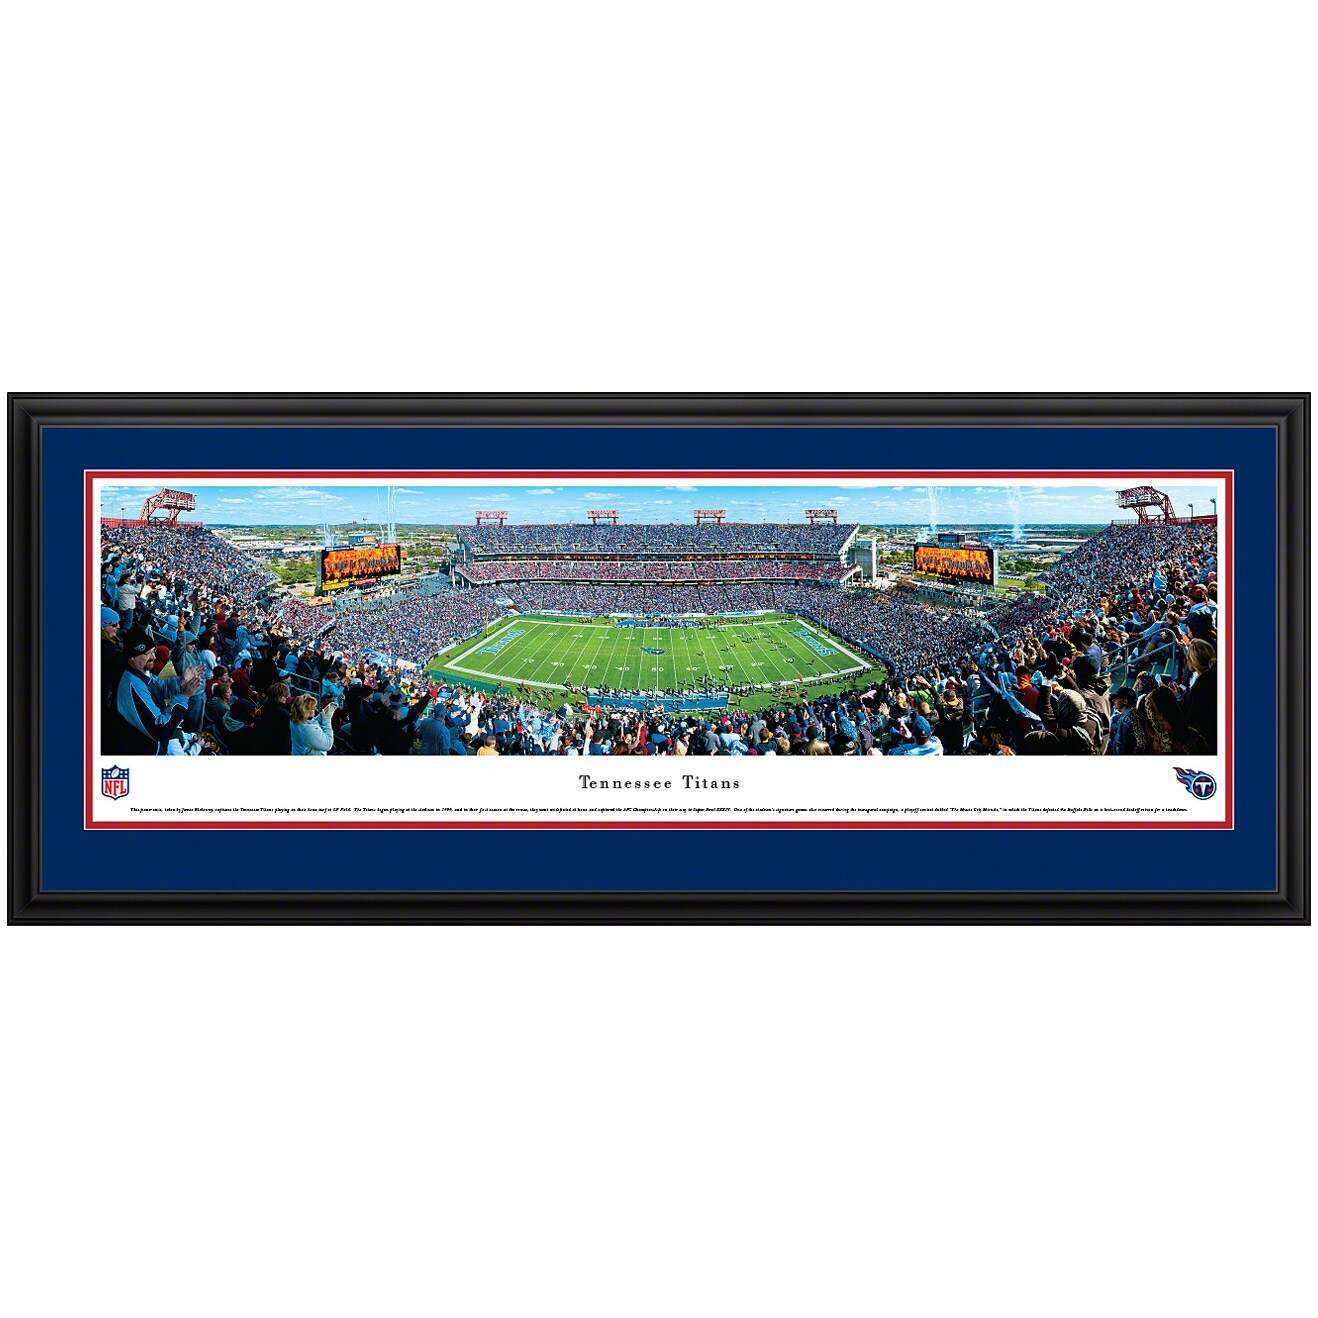 "Tennessee Titans 44"" x 18"" Deluxe Frame Panoramic Photo"